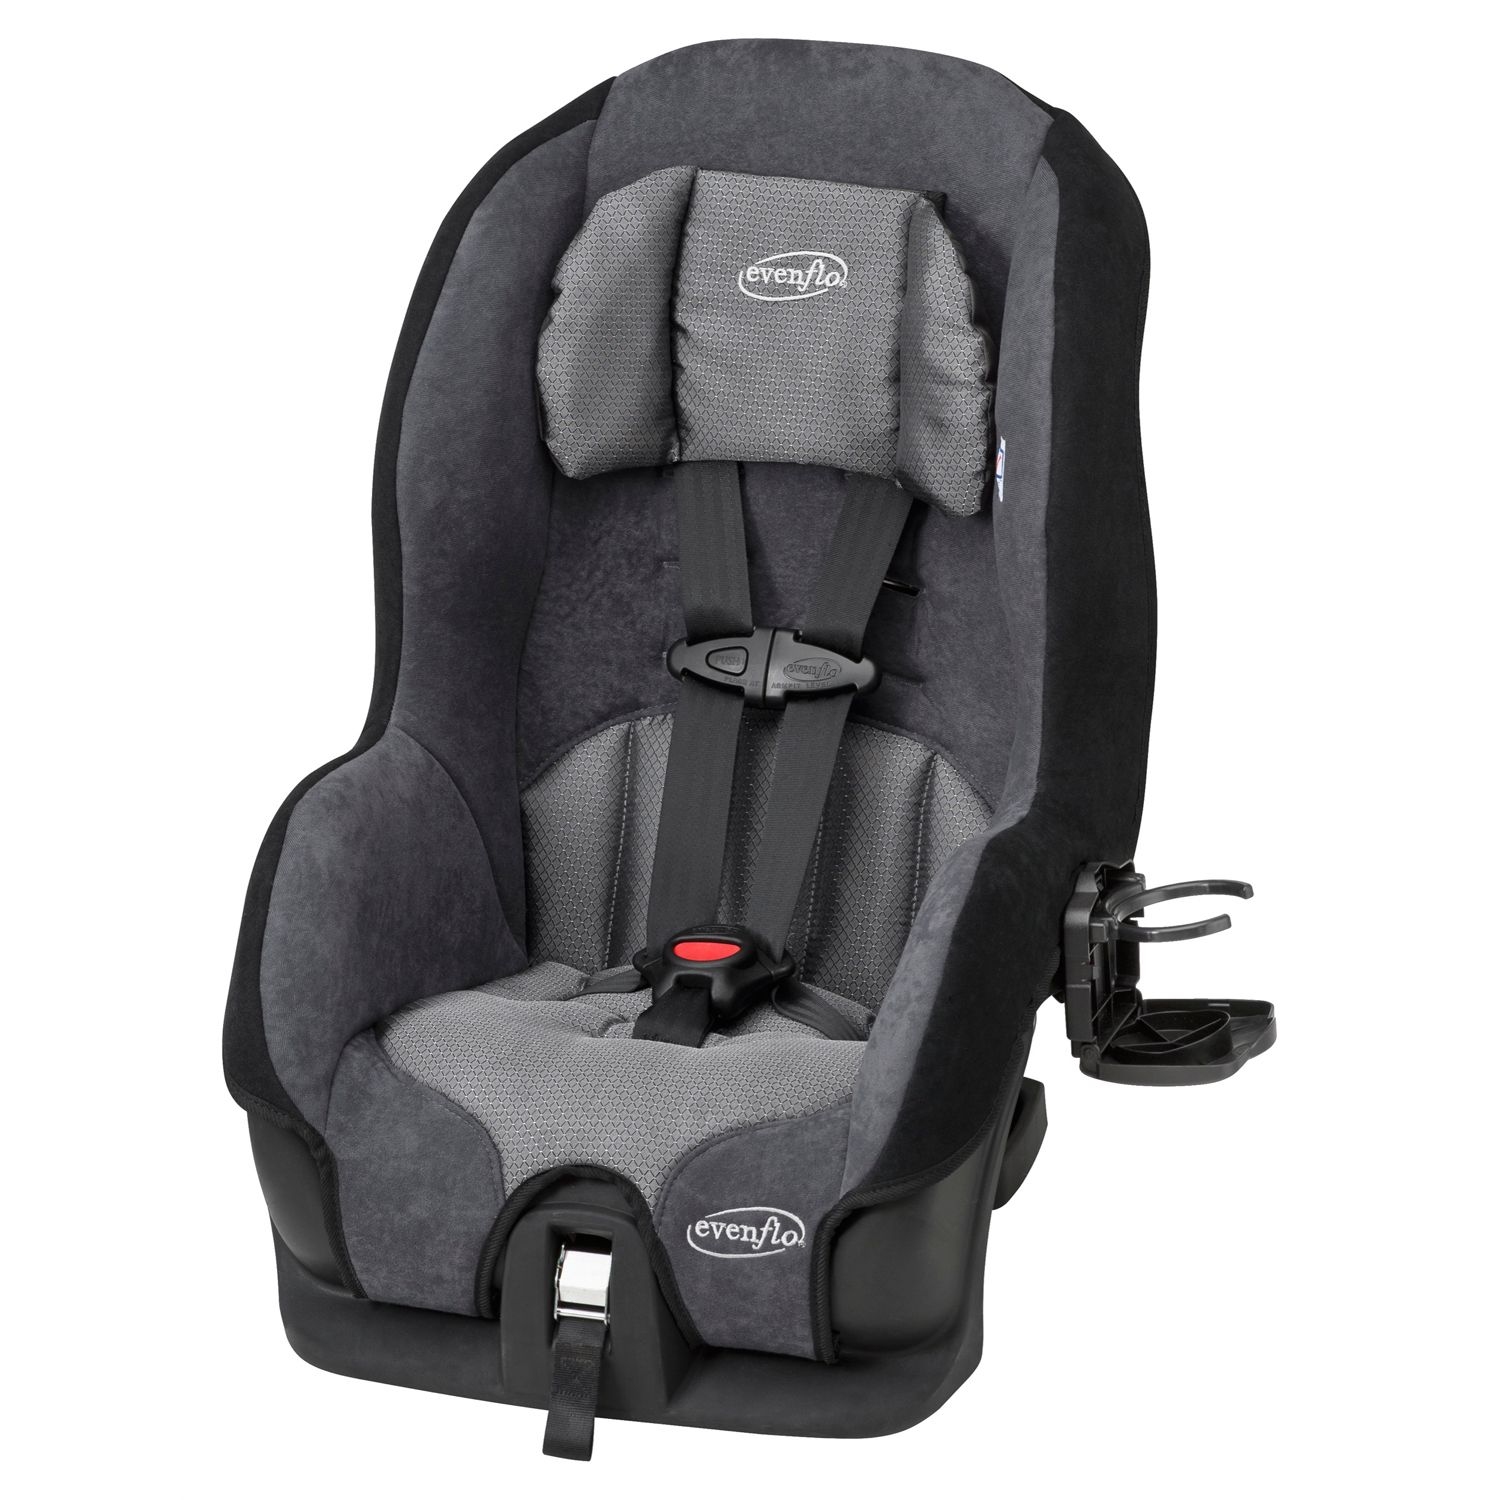 evenflo tribute 5 dlx convertible car seat rh kohls com Evenflo Momentum 65 Convertible Car Seat Evenflo Triumph 65 LX